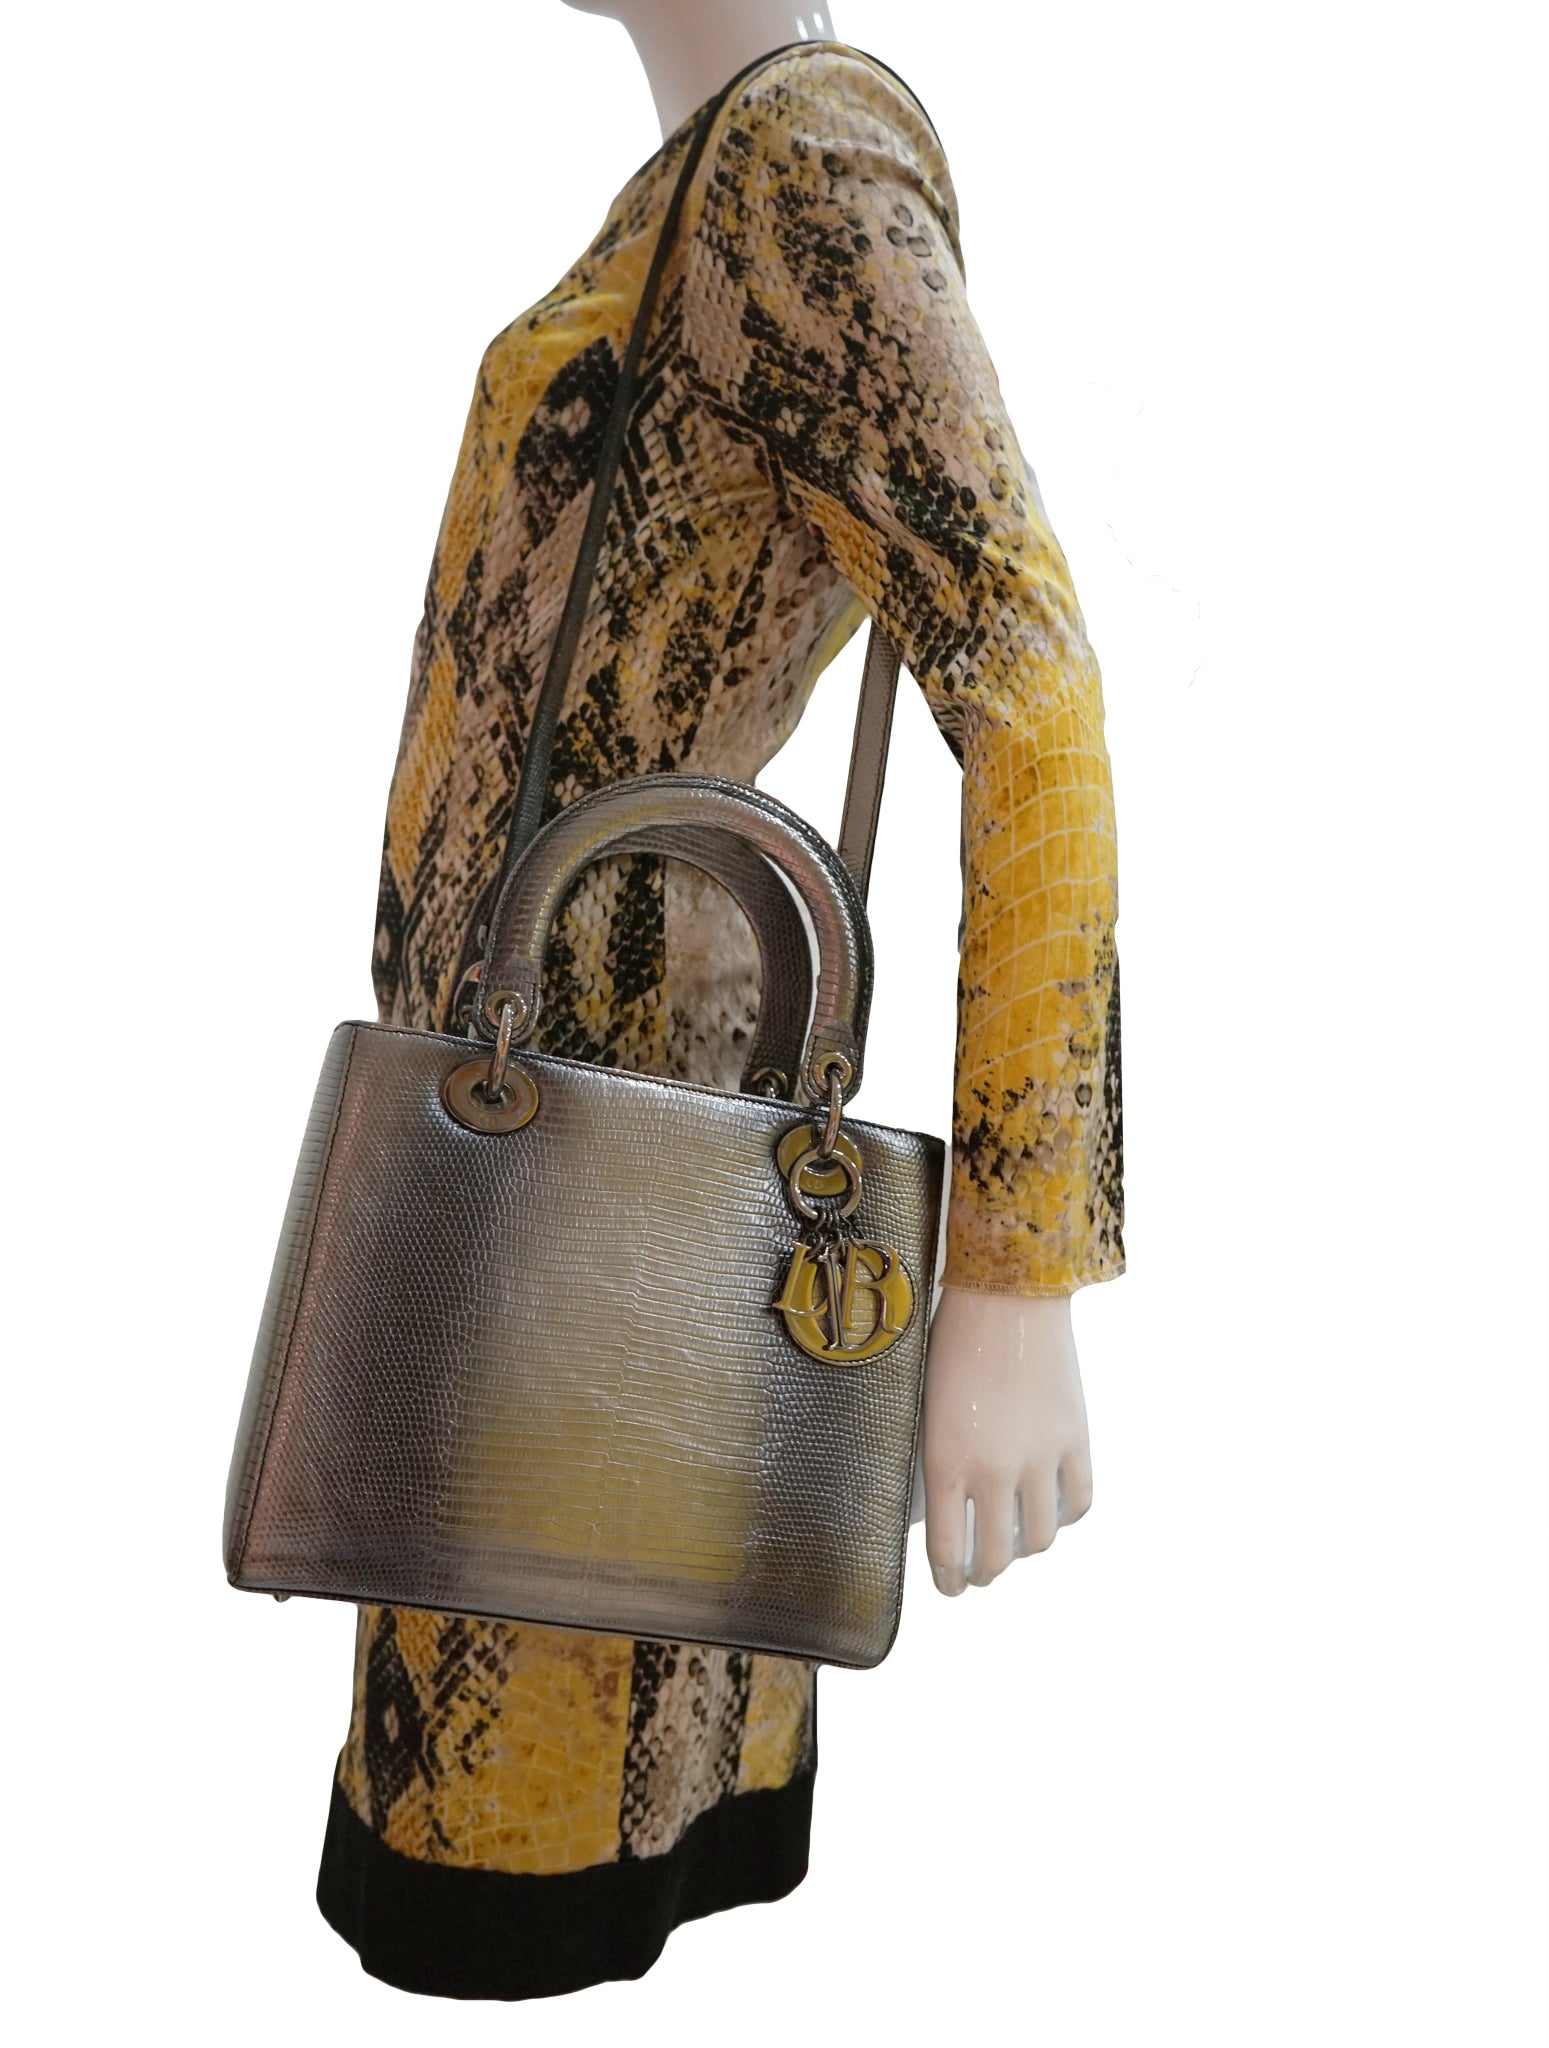 ff1283b8a684 DIOR GLAZED LIZARD LEATHER LADY DIOR BAG – Kidsstyleforless